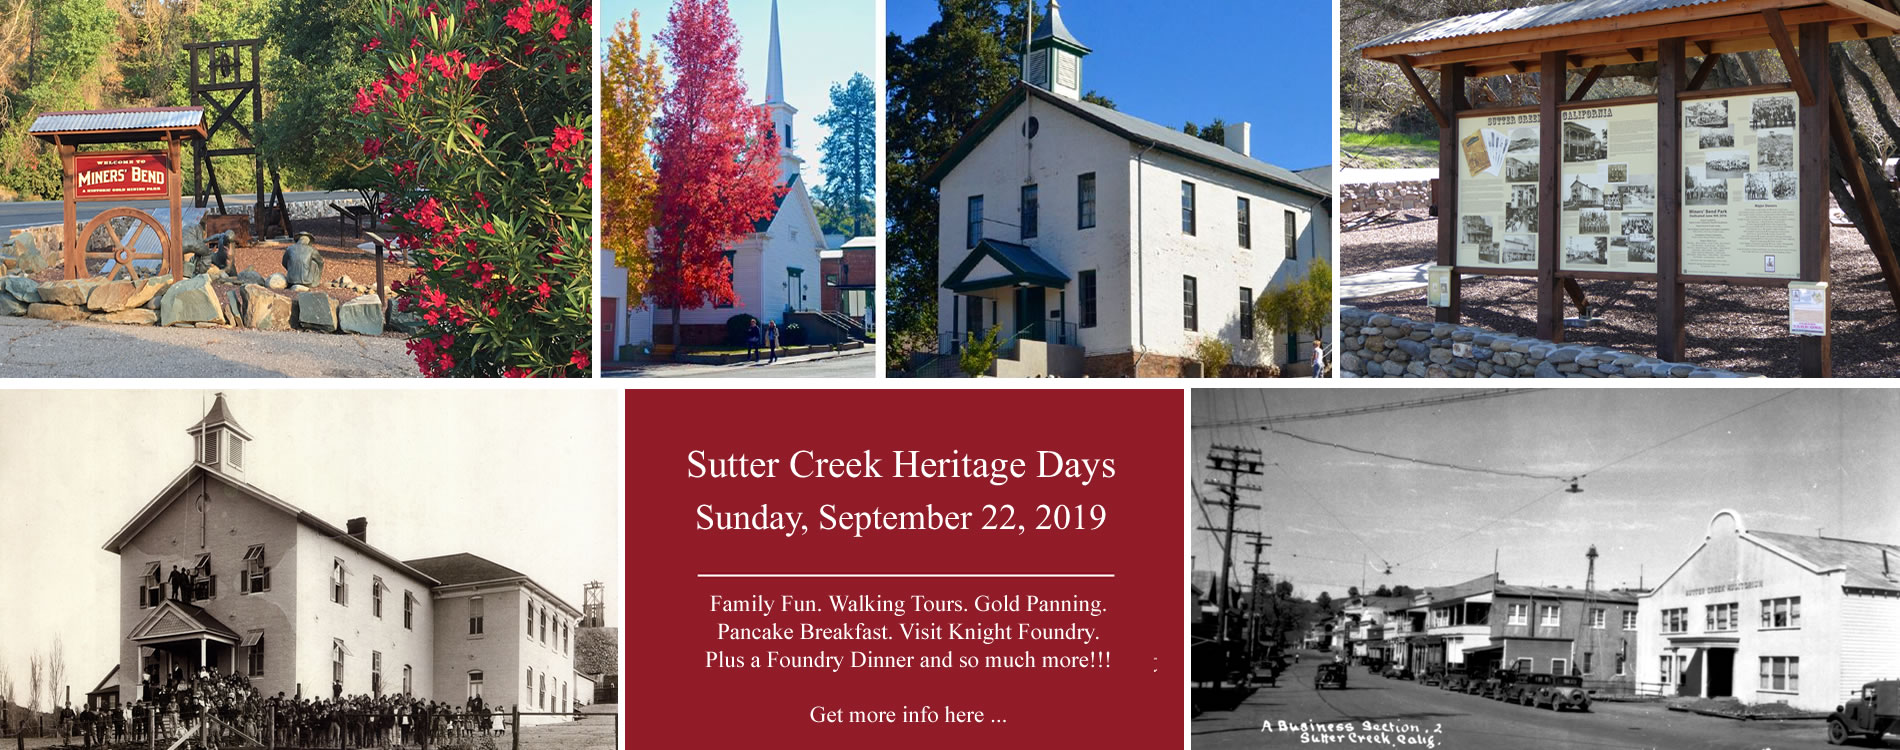 sutter creek heritage days 2019